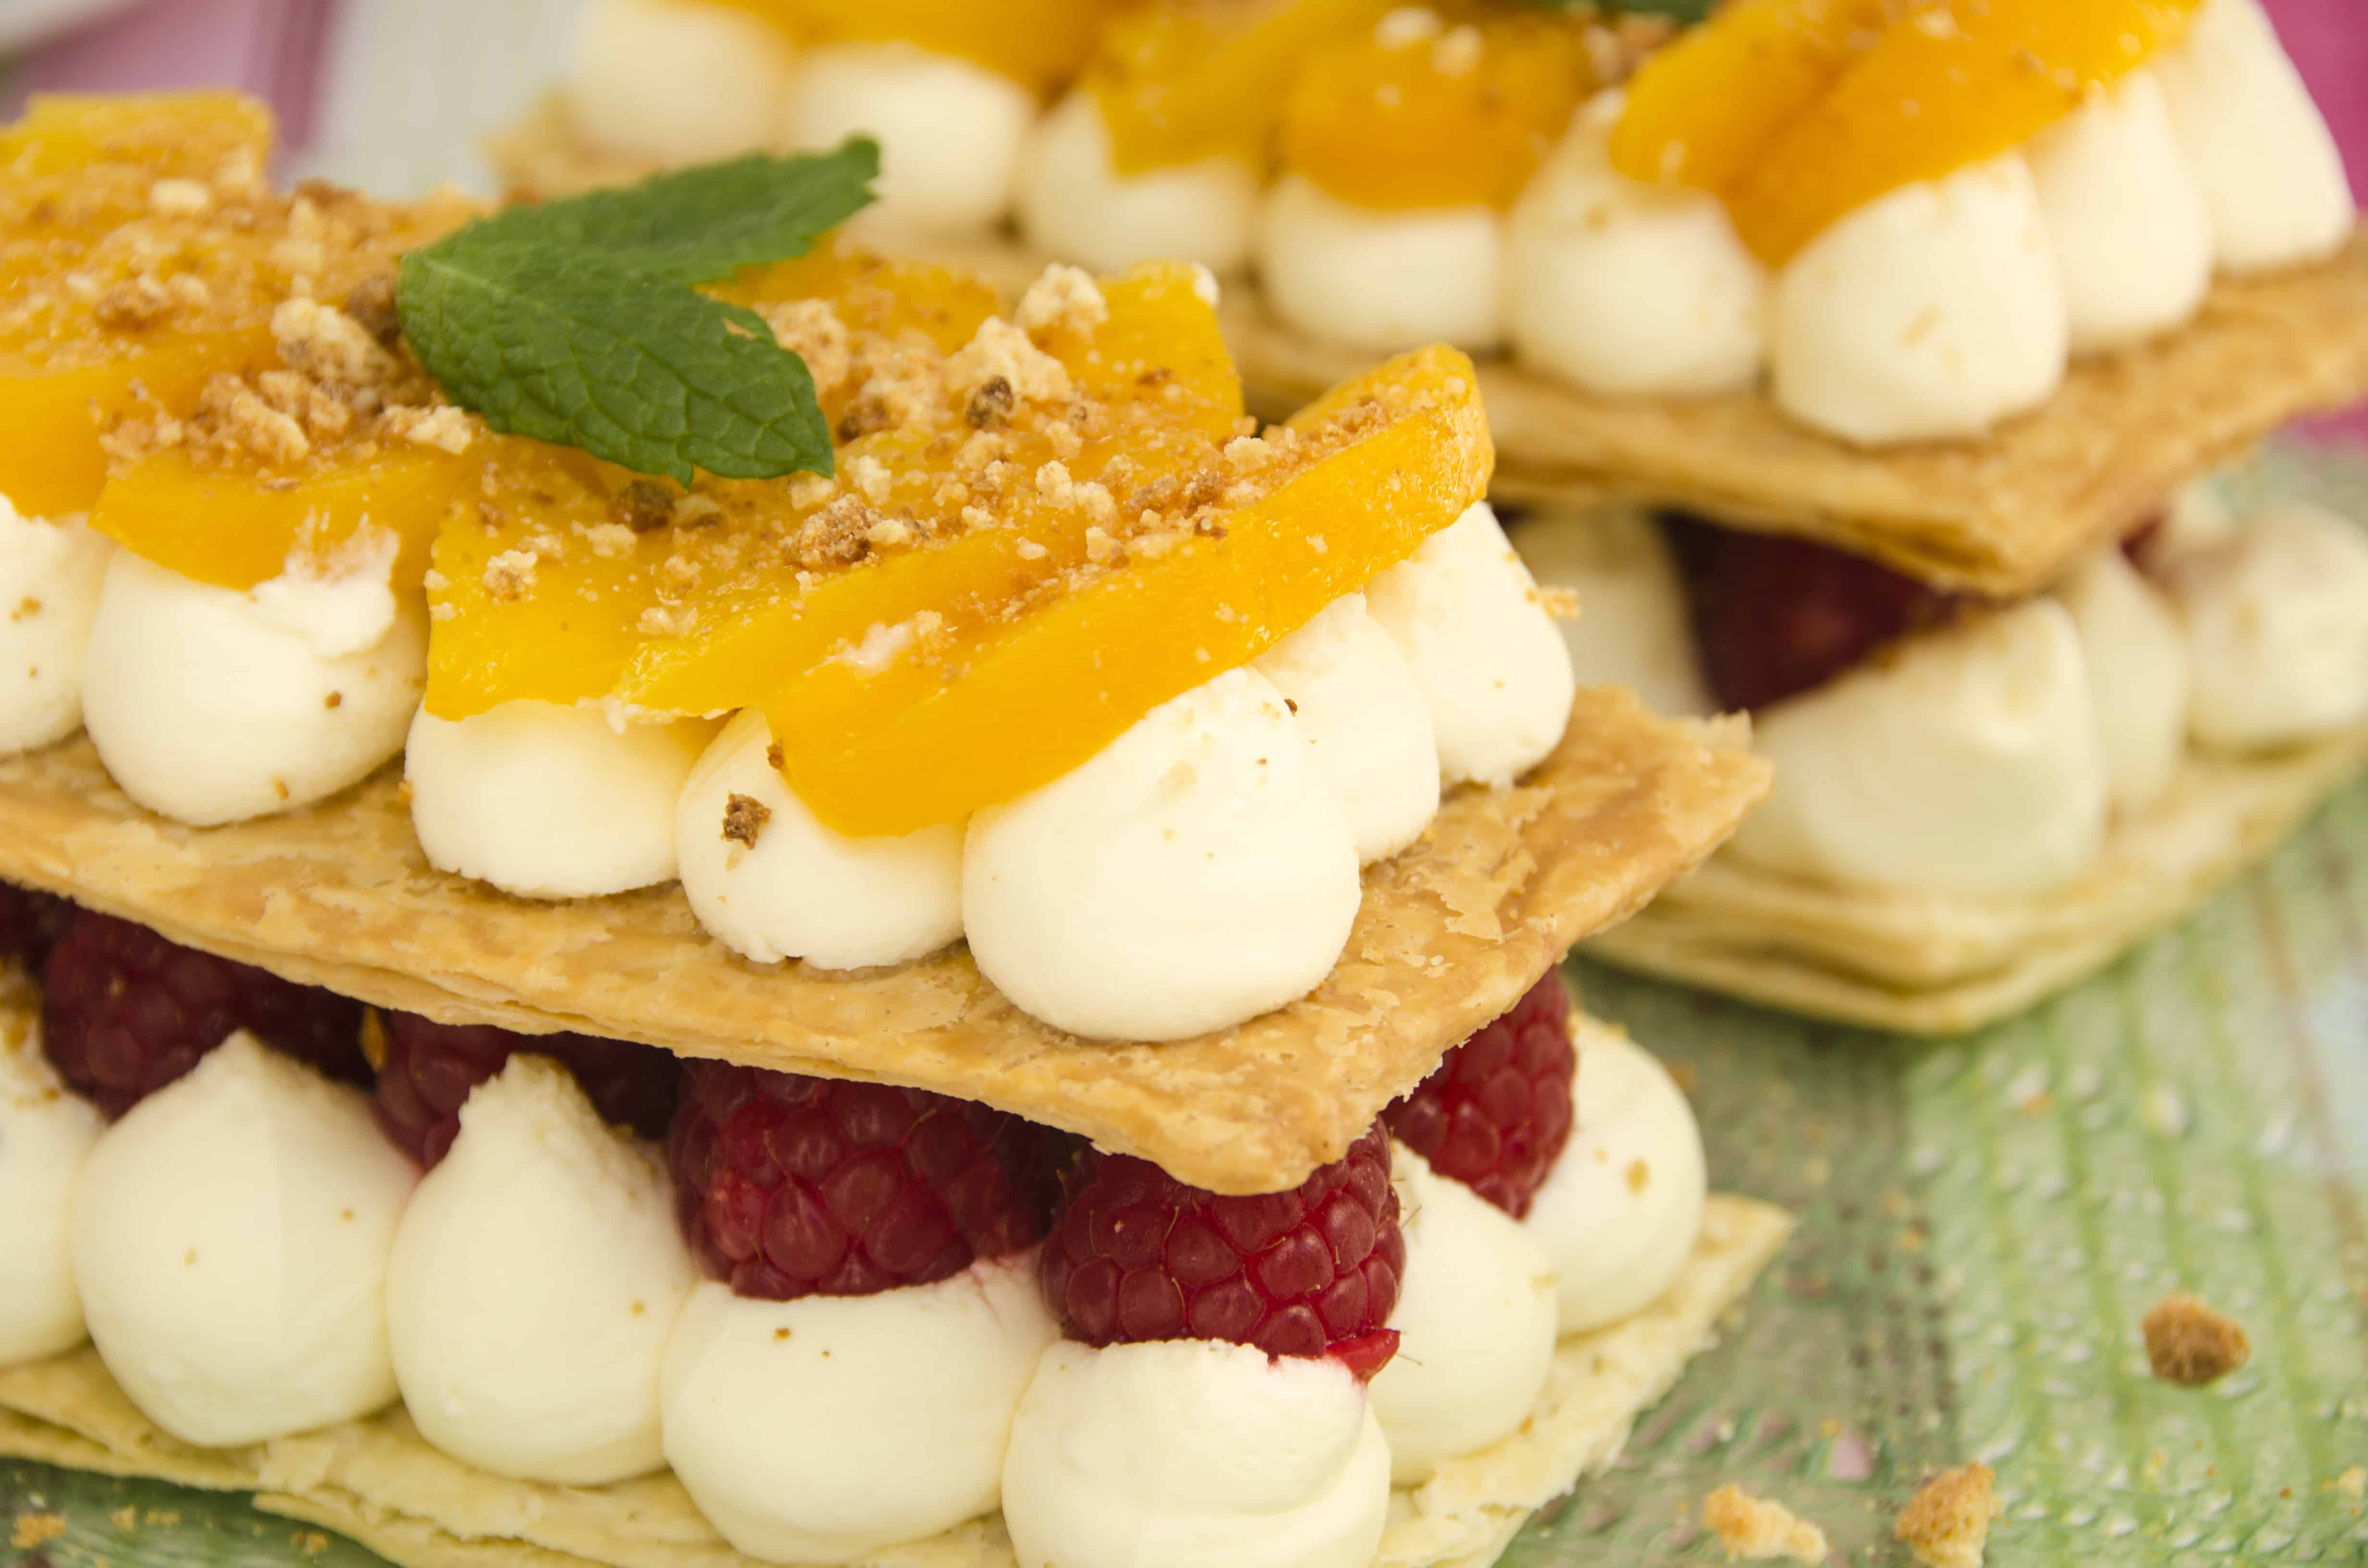 peach melba mille feuille with marscapone cream, peaches and raspberries